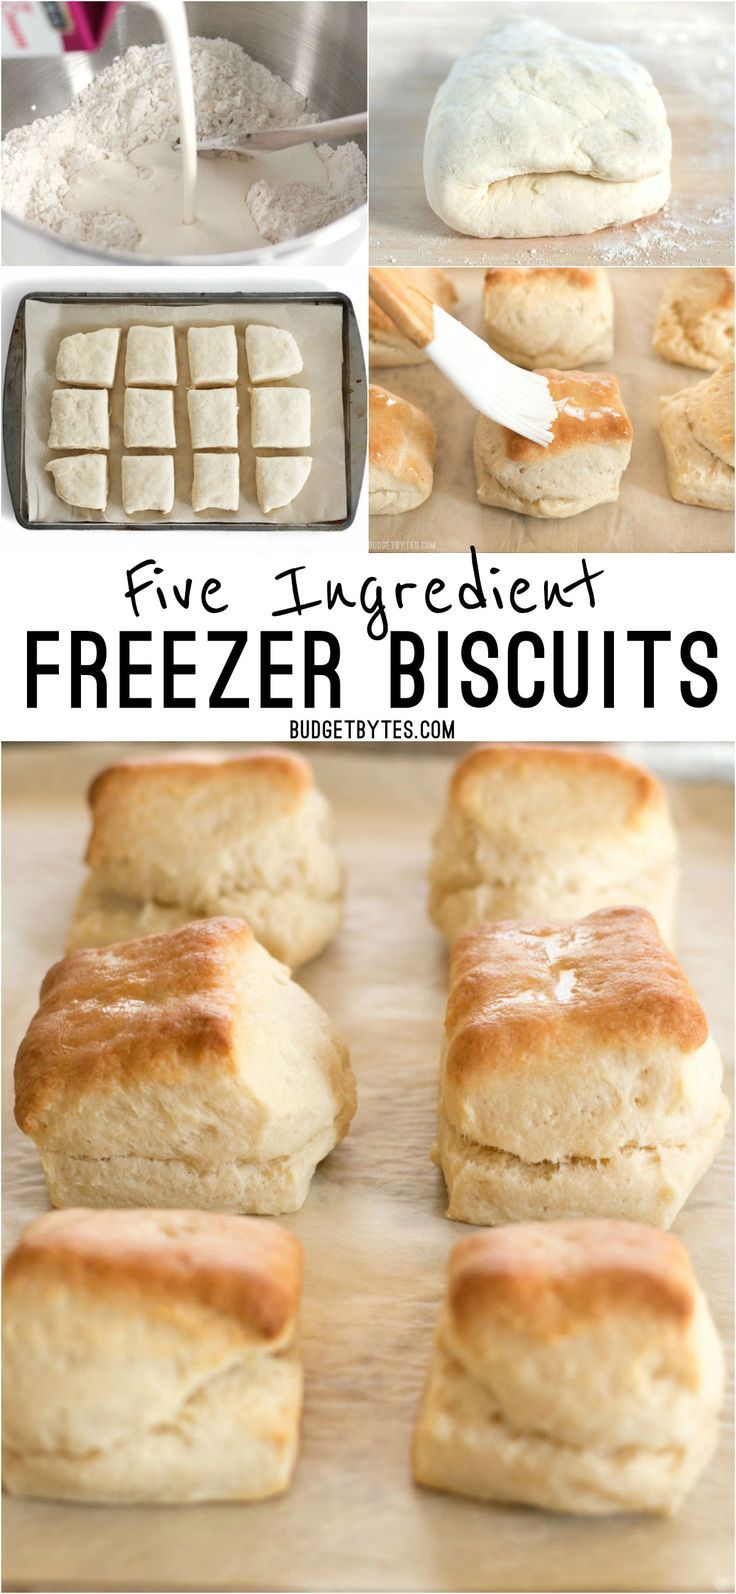 5 Ingredient Freezer Biscuits are the fastest and easiest way to have fresh, warm, and fluffy biscuits for breakfast any day of the week. @budgetbytes